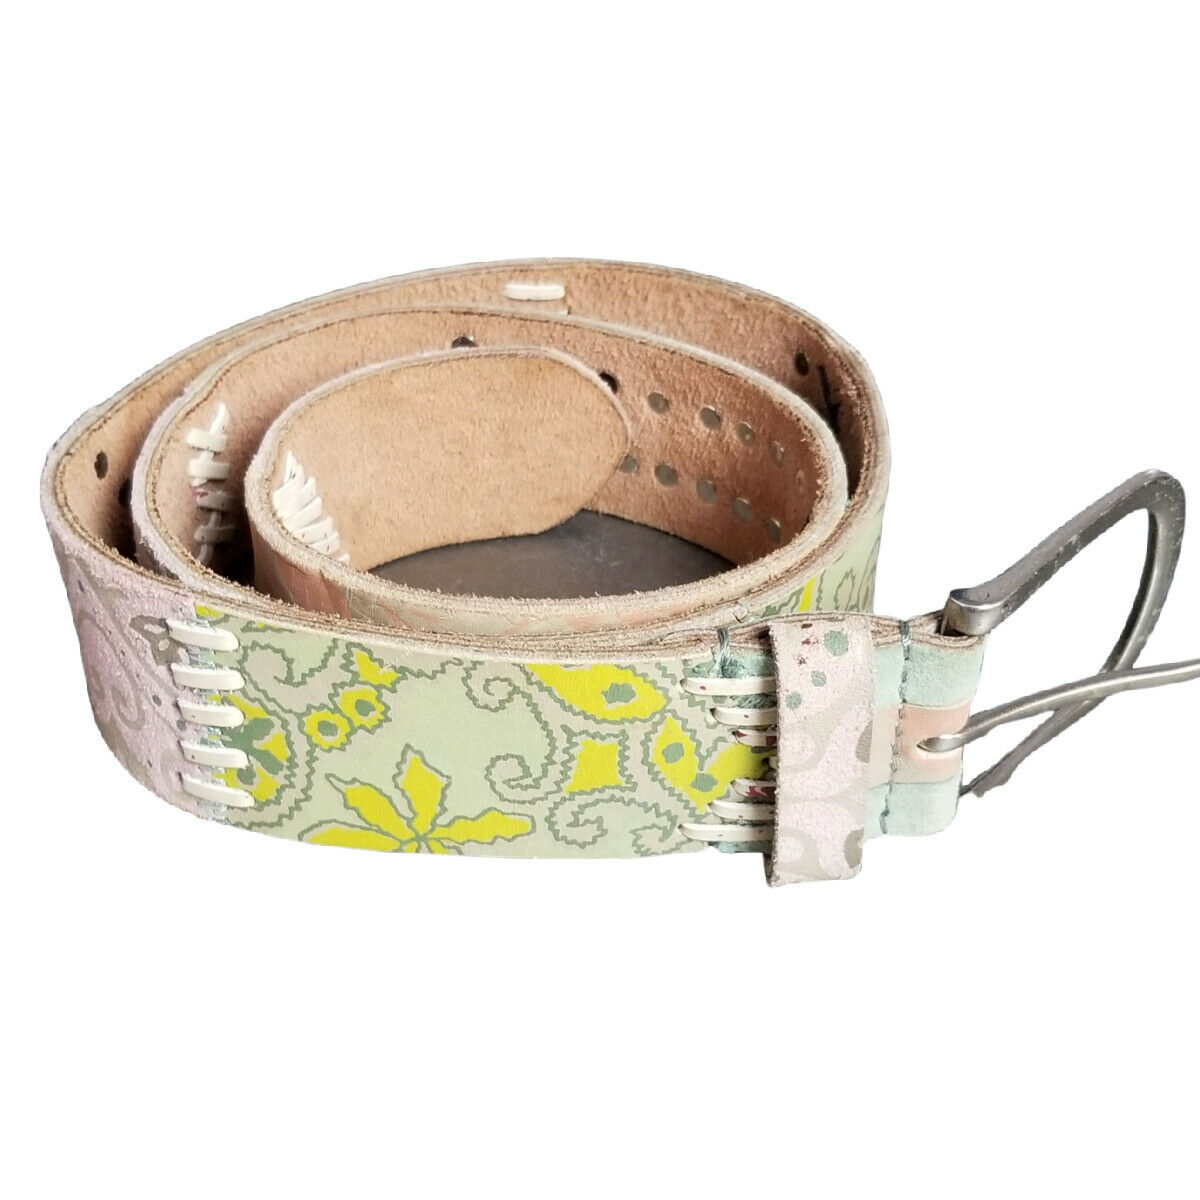 Fossil Women's Patchwork Leather Belt Size Small Multicolor BT3085998S